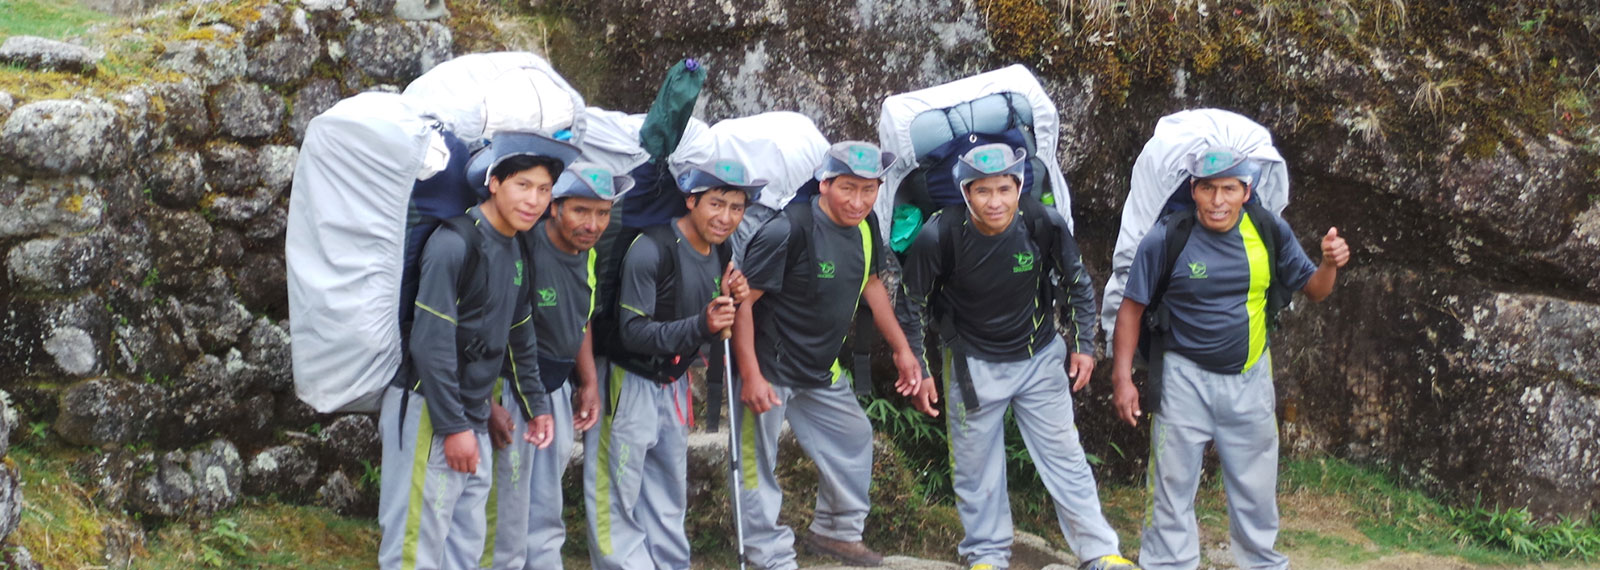 team salkantay hike